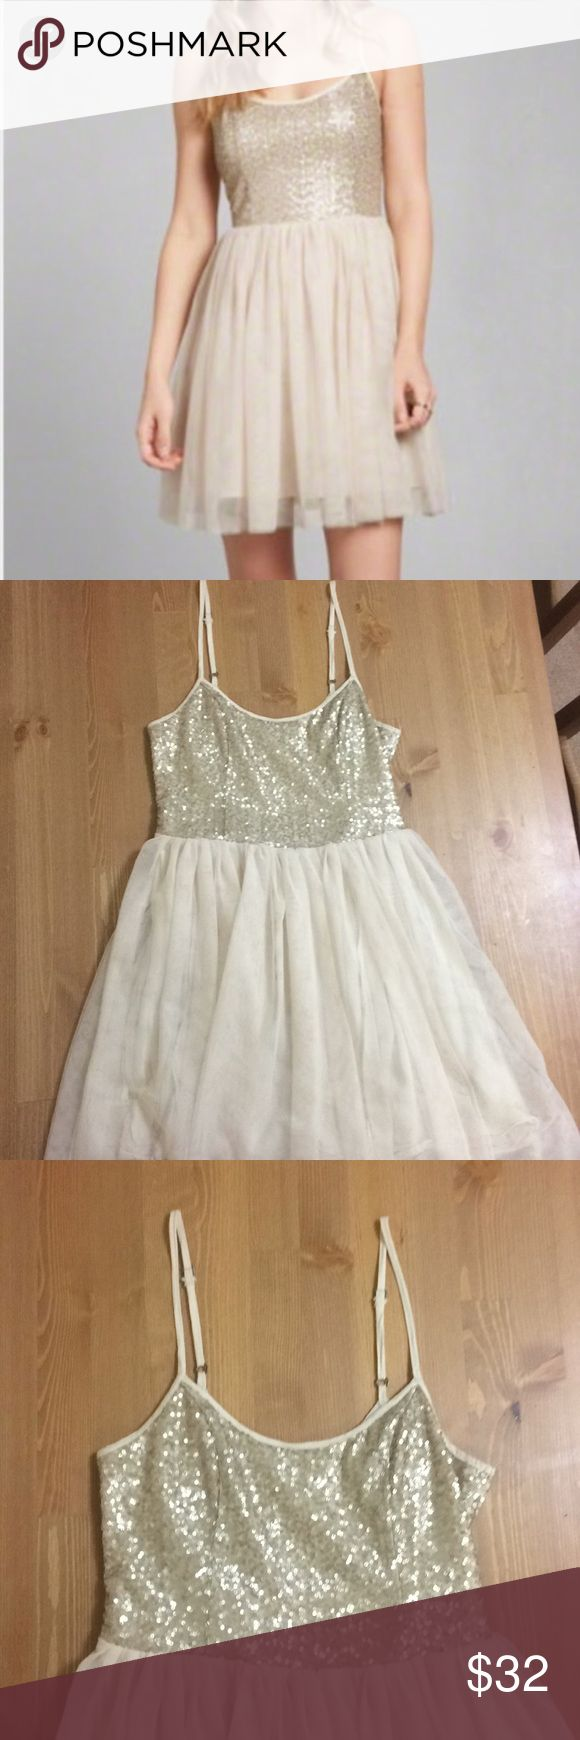 Abercrombie Mary Shine Sequin Tutu Dress A sparkly ballerina inspired tutu party dress! This dress has a sequin bust and loose chiffon skirt in champagne and ivory. Size XS. In good used condition. Secured by internal zipper. Abercrombie & Fitch Dresses Mini